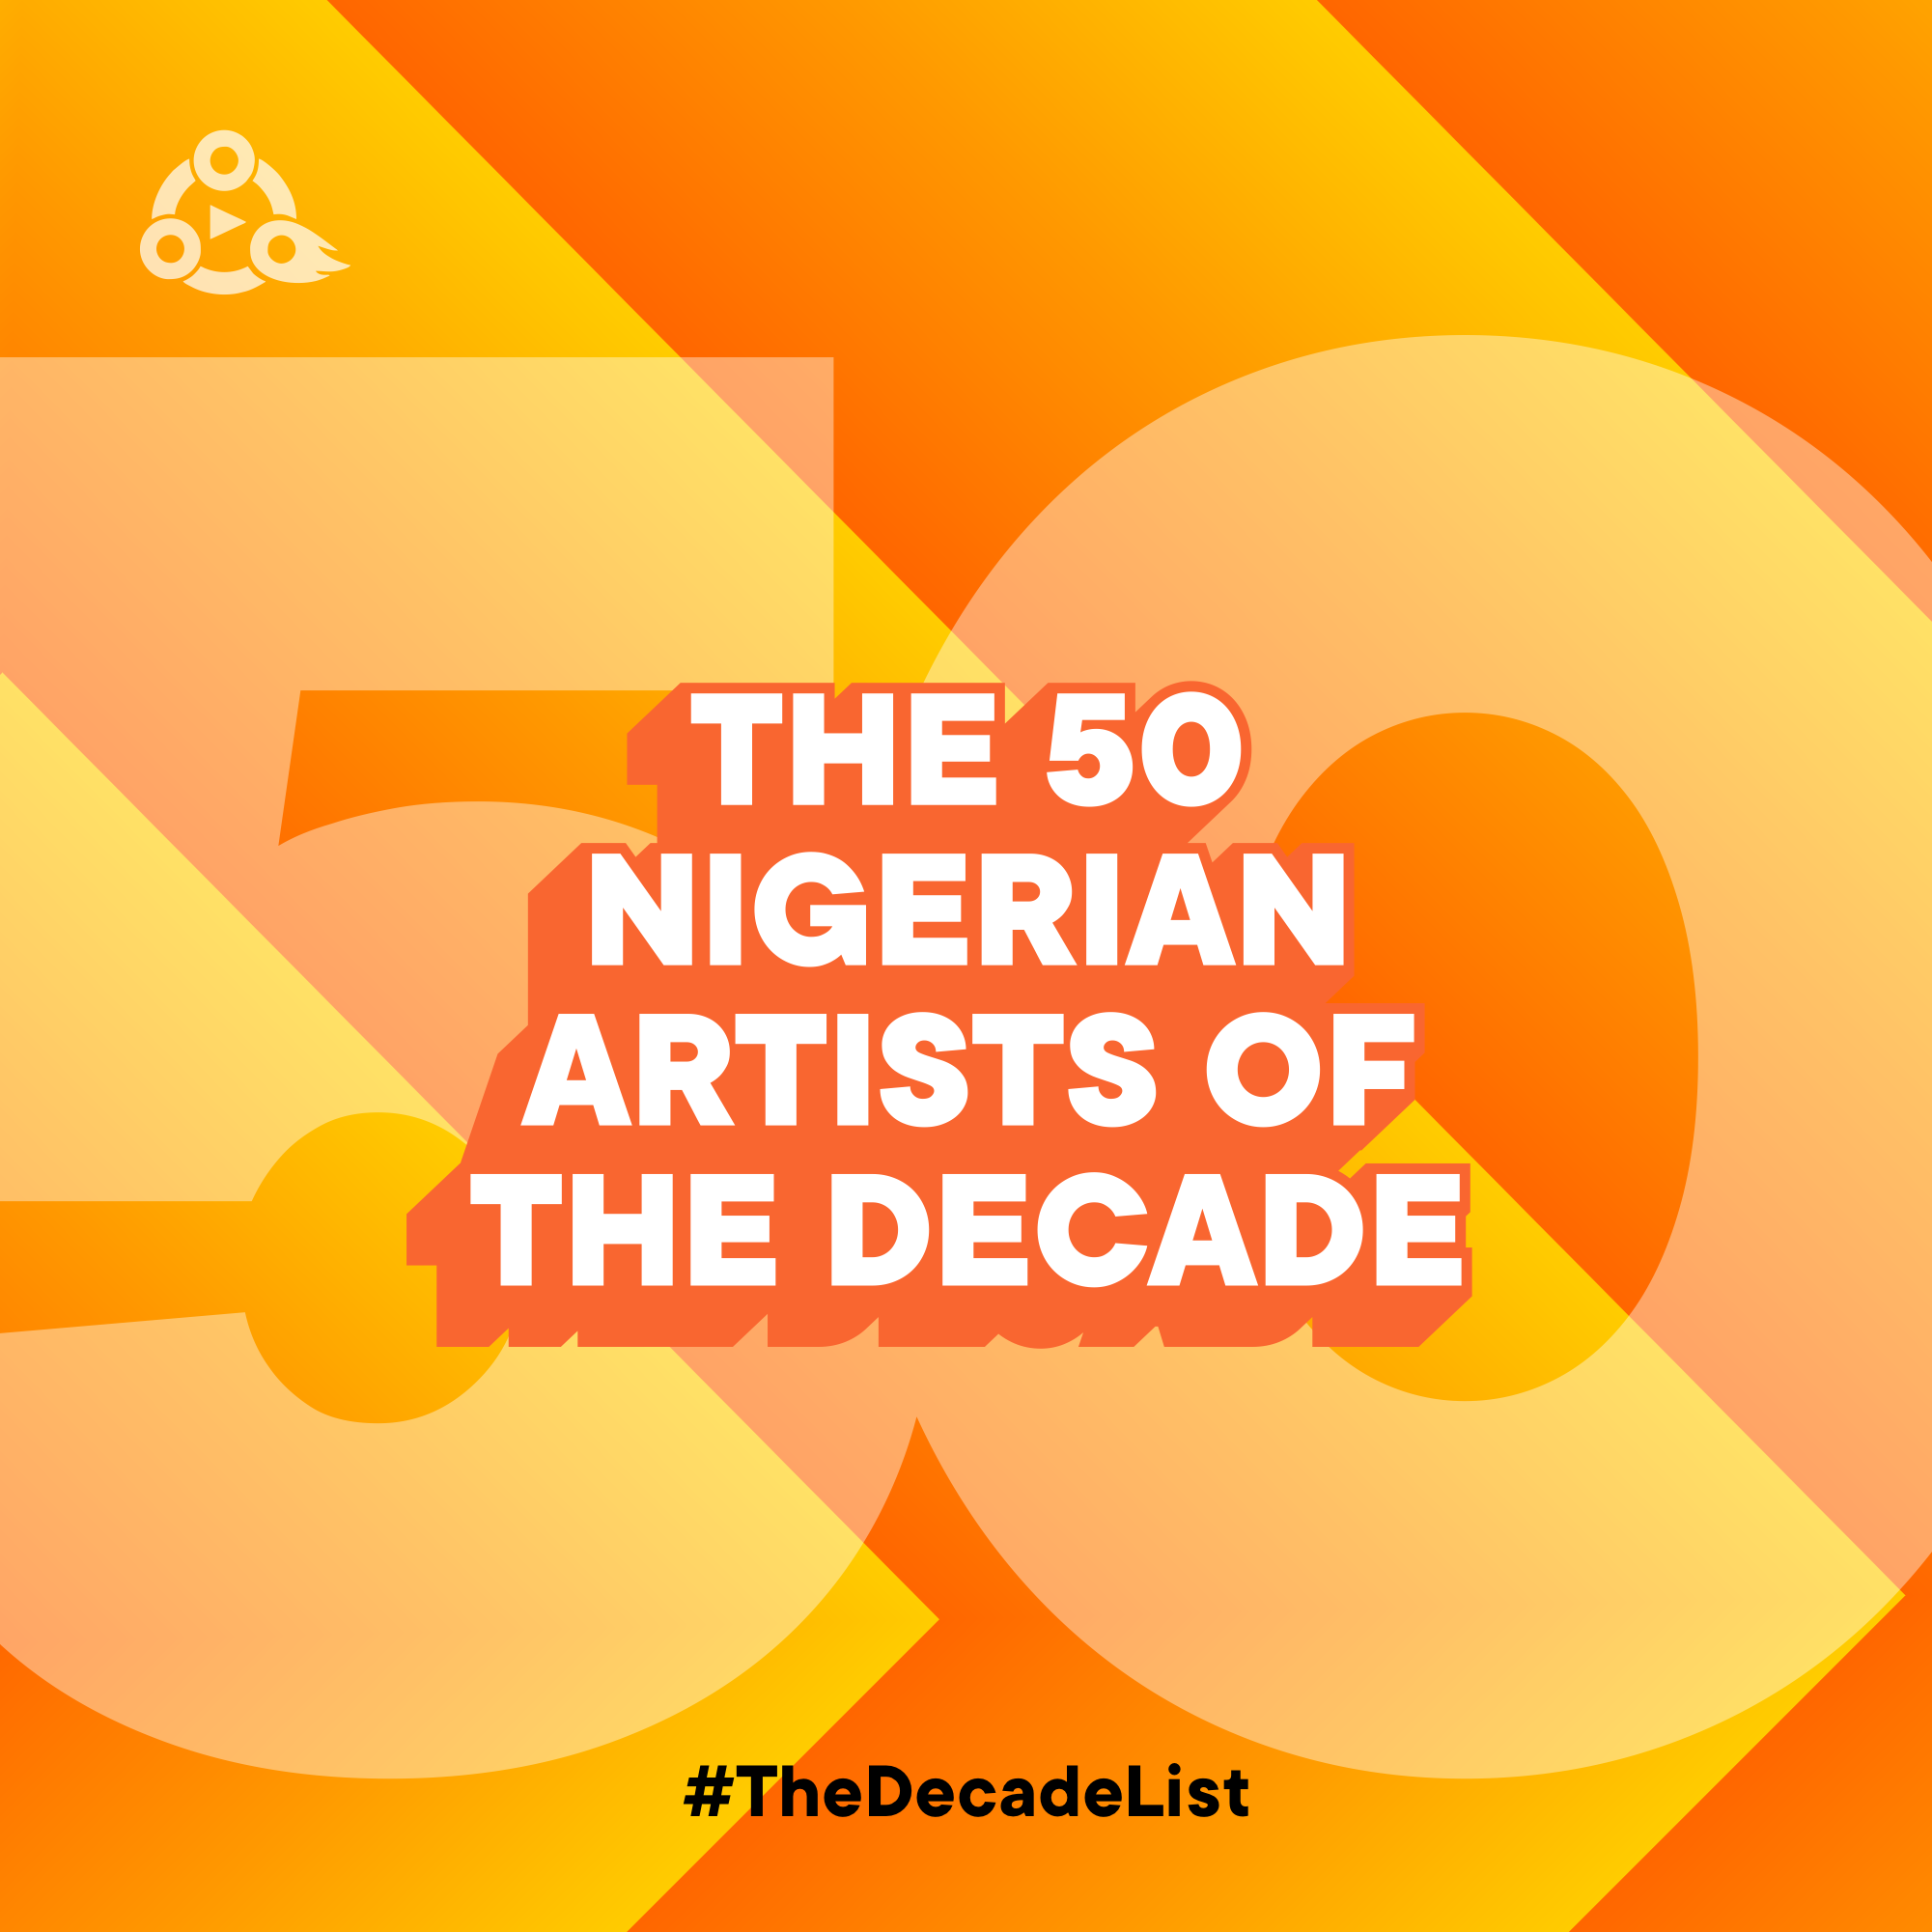 The 50 Nigerian Artists Of The Decade (2010 - 2019) | #TheDecadeList